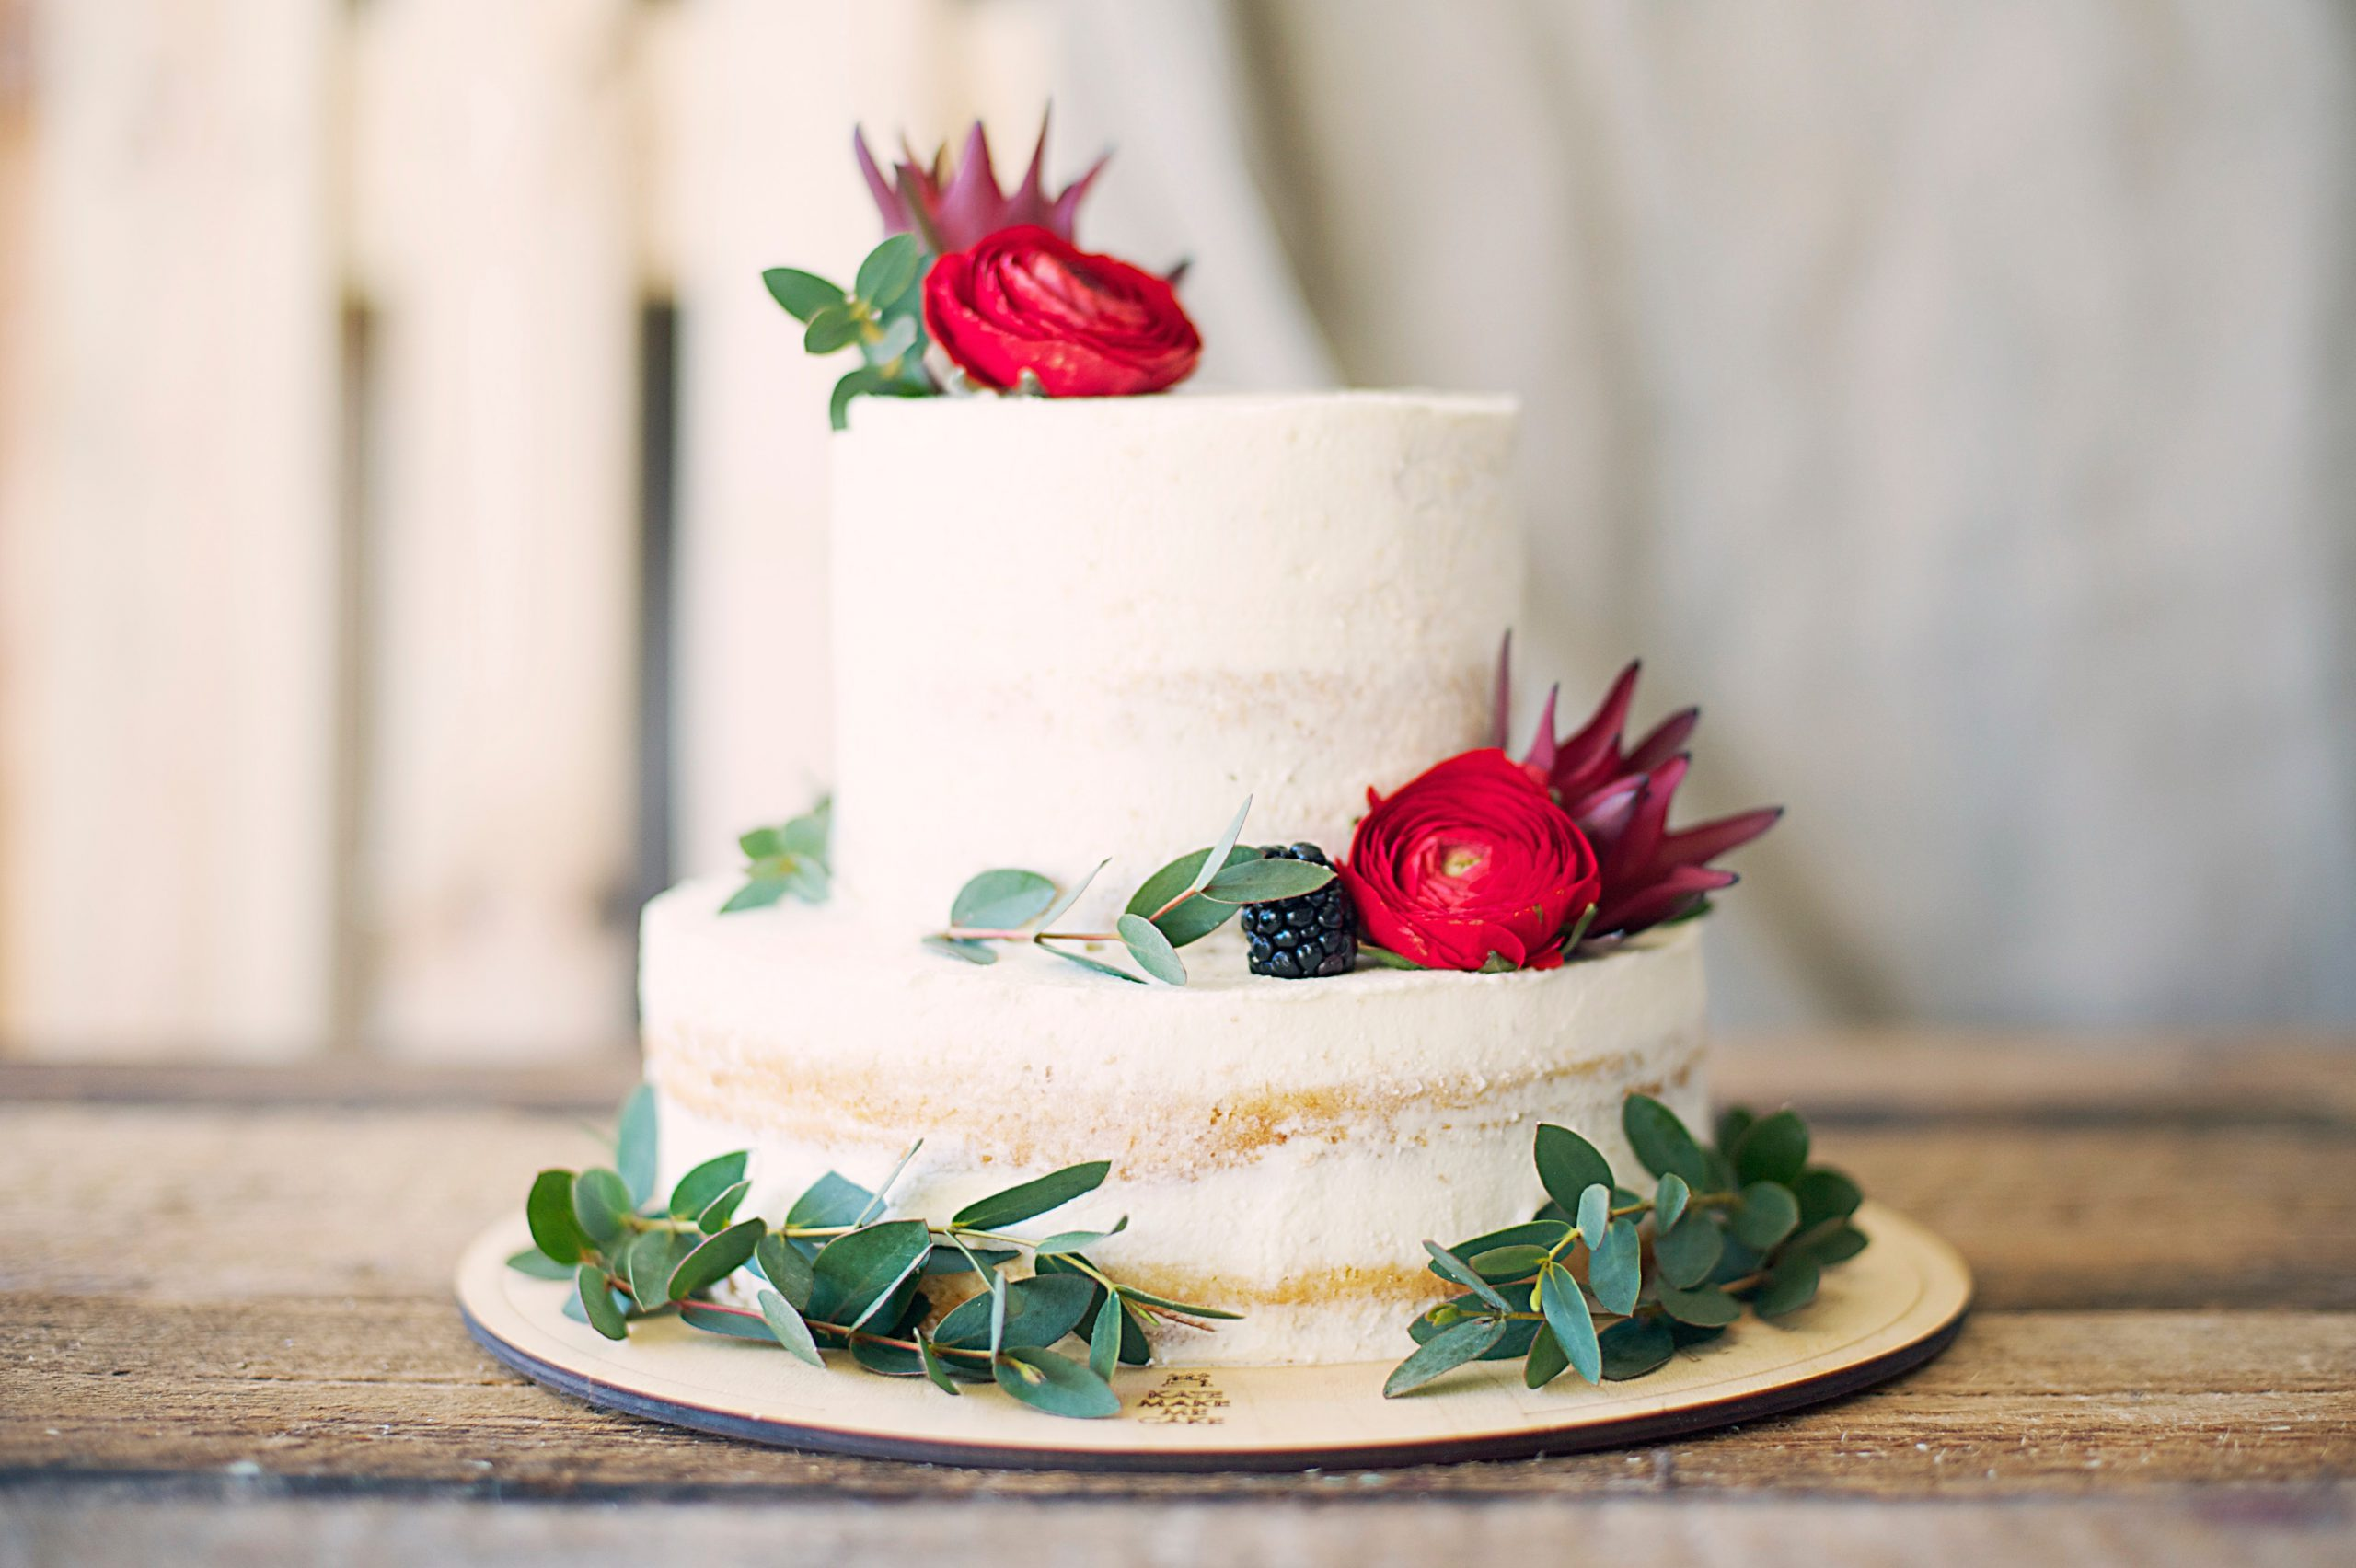 close-up-photography-of-cake-with-flower-decor-1070850